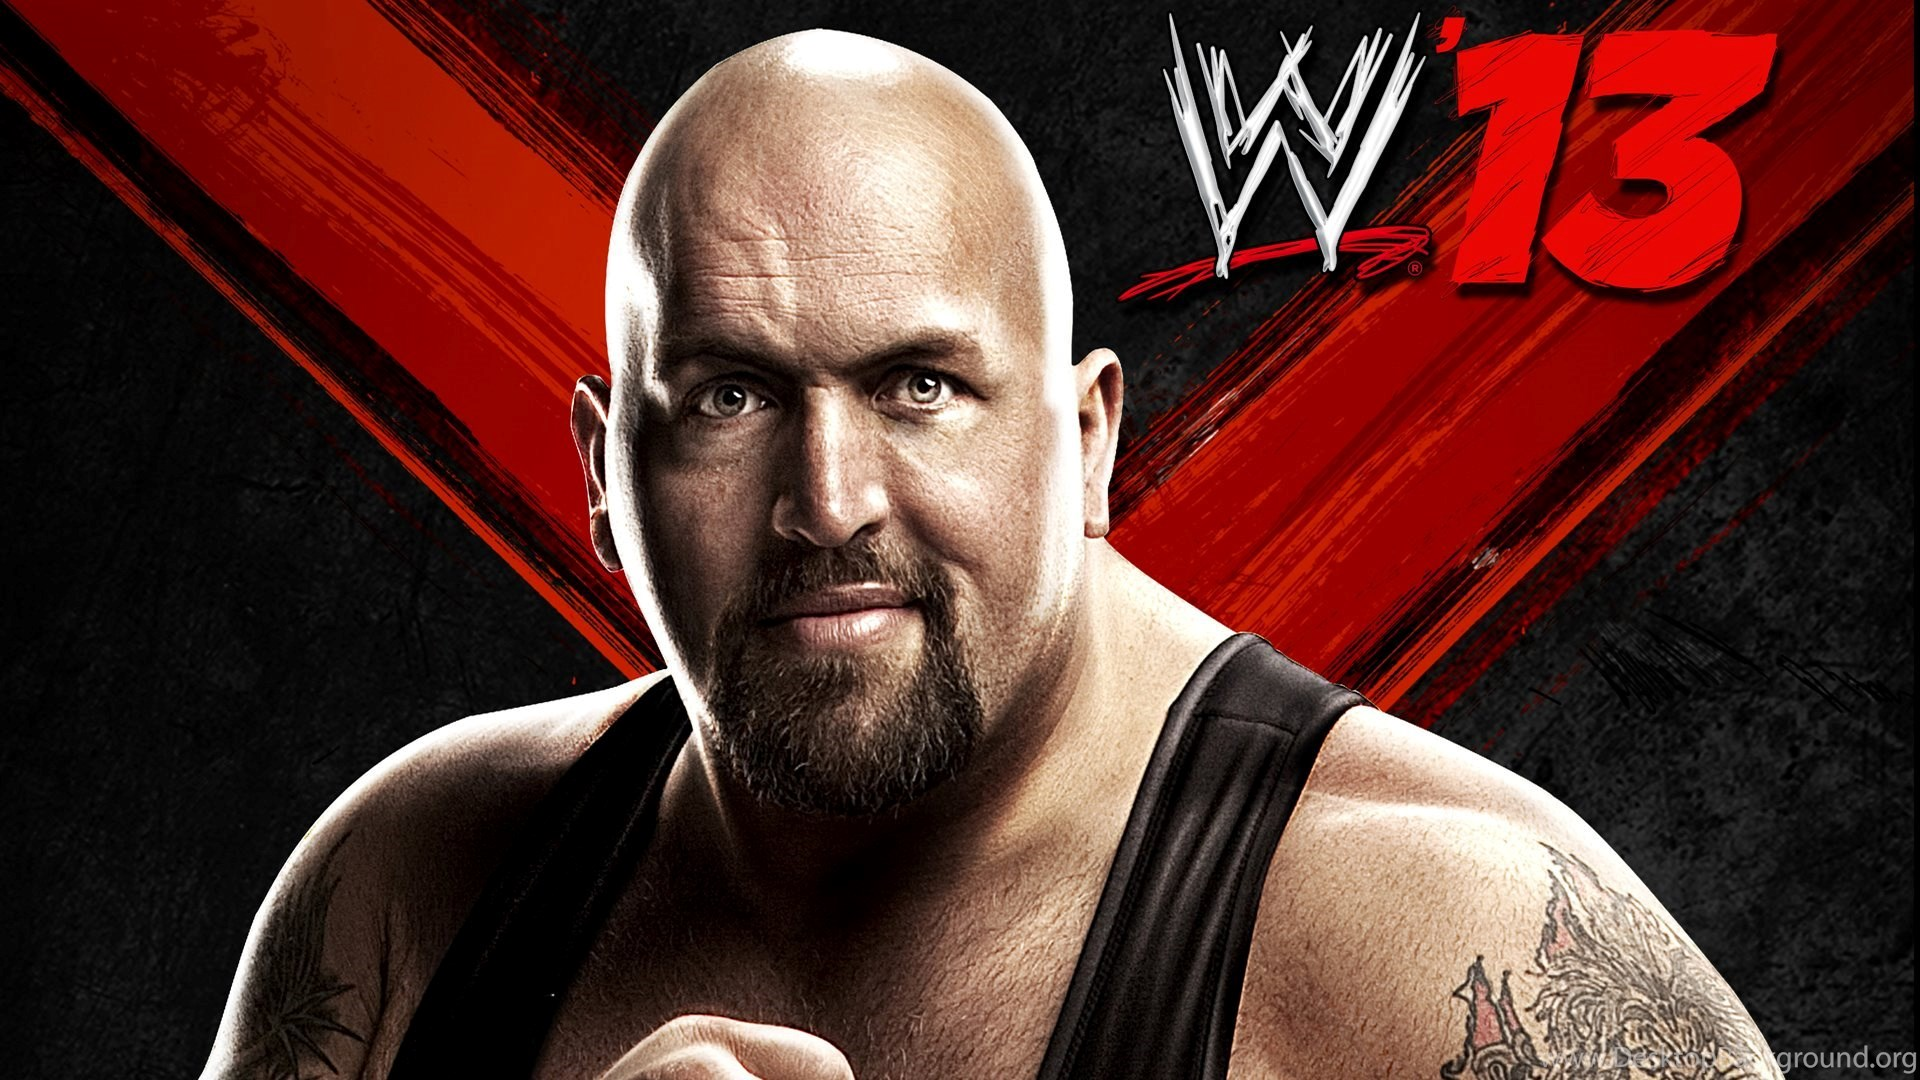 Big Show Wwe Hd Wallpapers Desktop Background